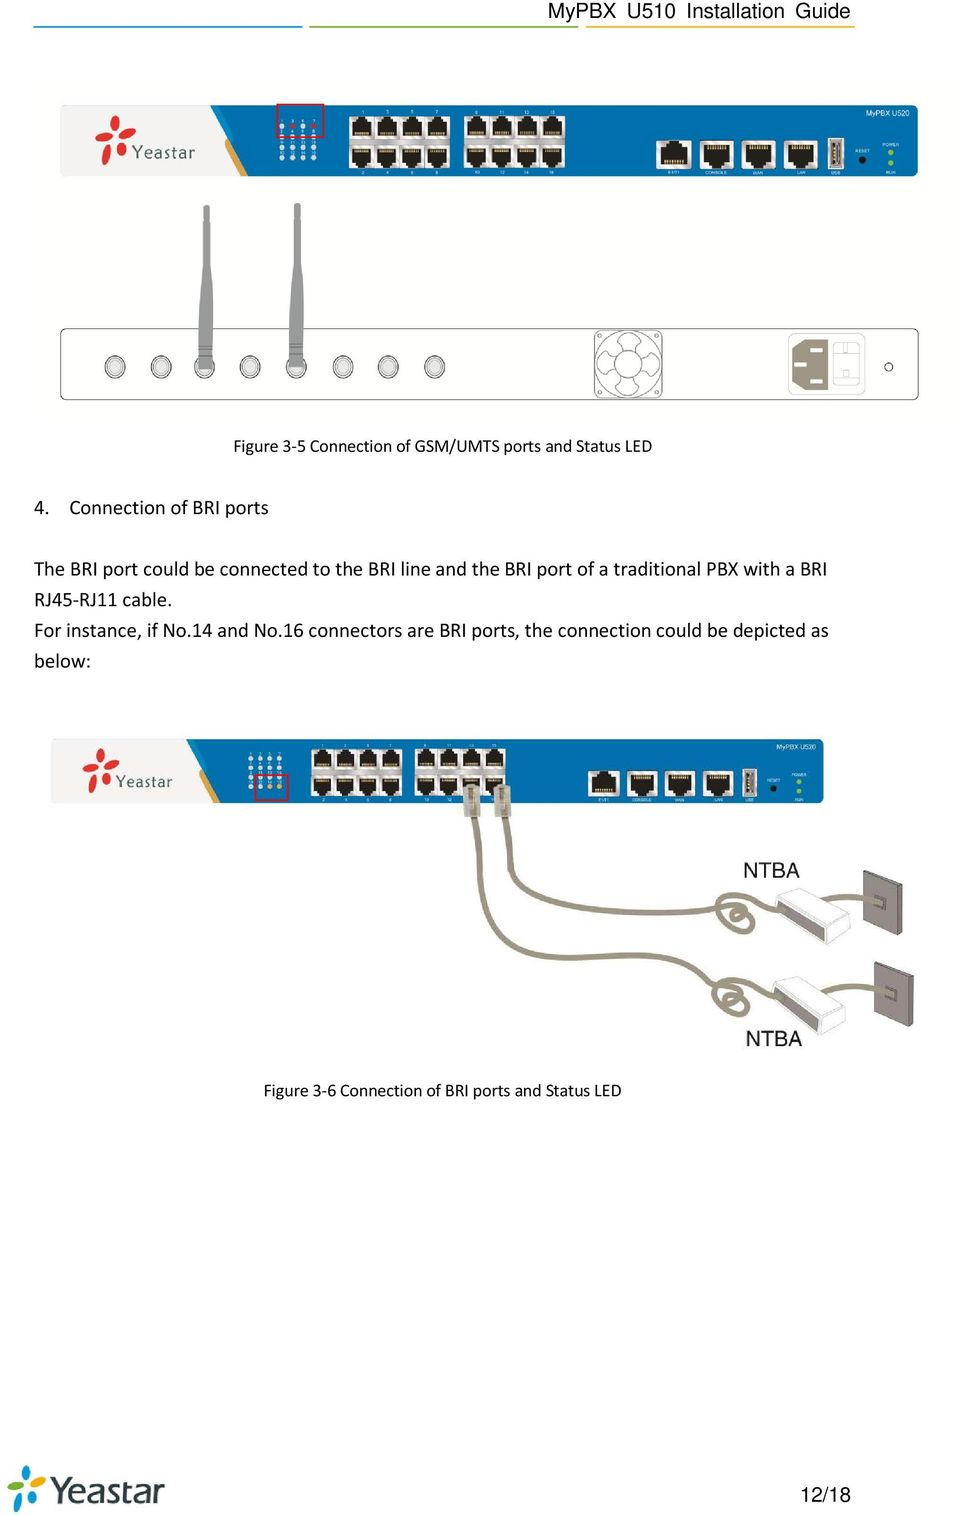 of a traditional PBX with a BRI RJ45-RJ11 cable. For instance, if No.14 and No.